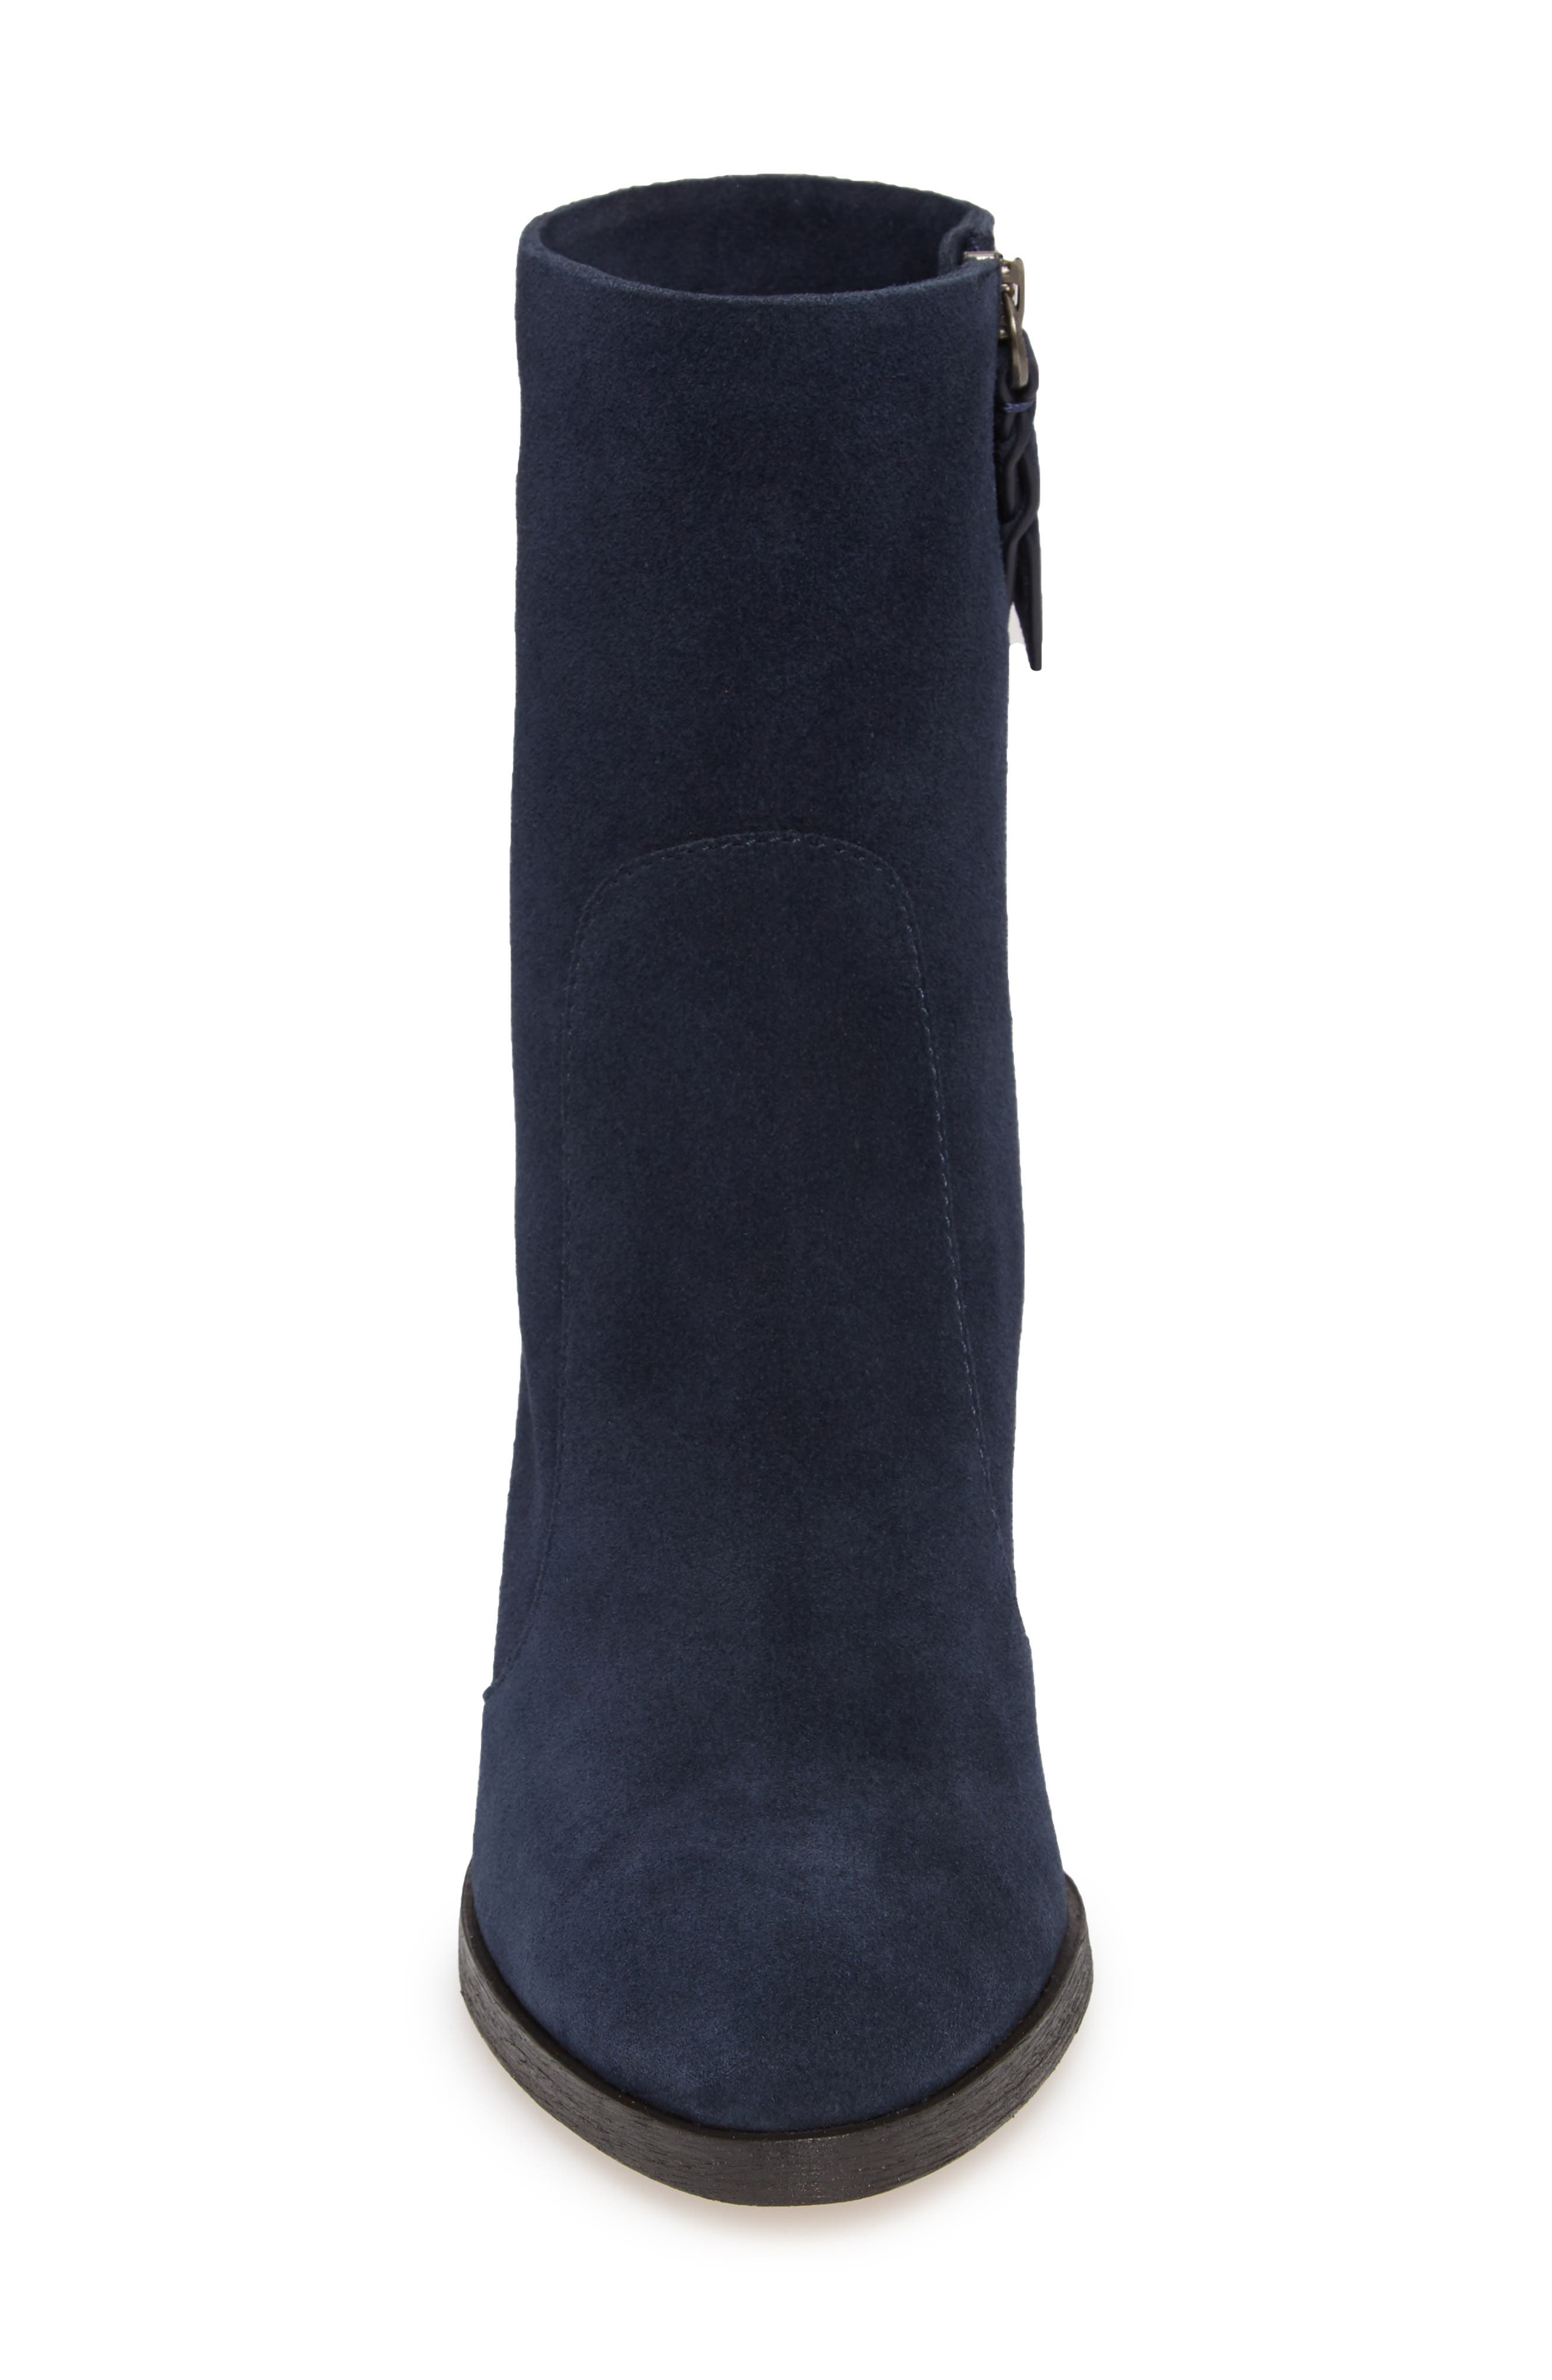 Roselyn II Almond Toe Bootie,                             Alternate thumbnail 4, color,                             Navy Suede